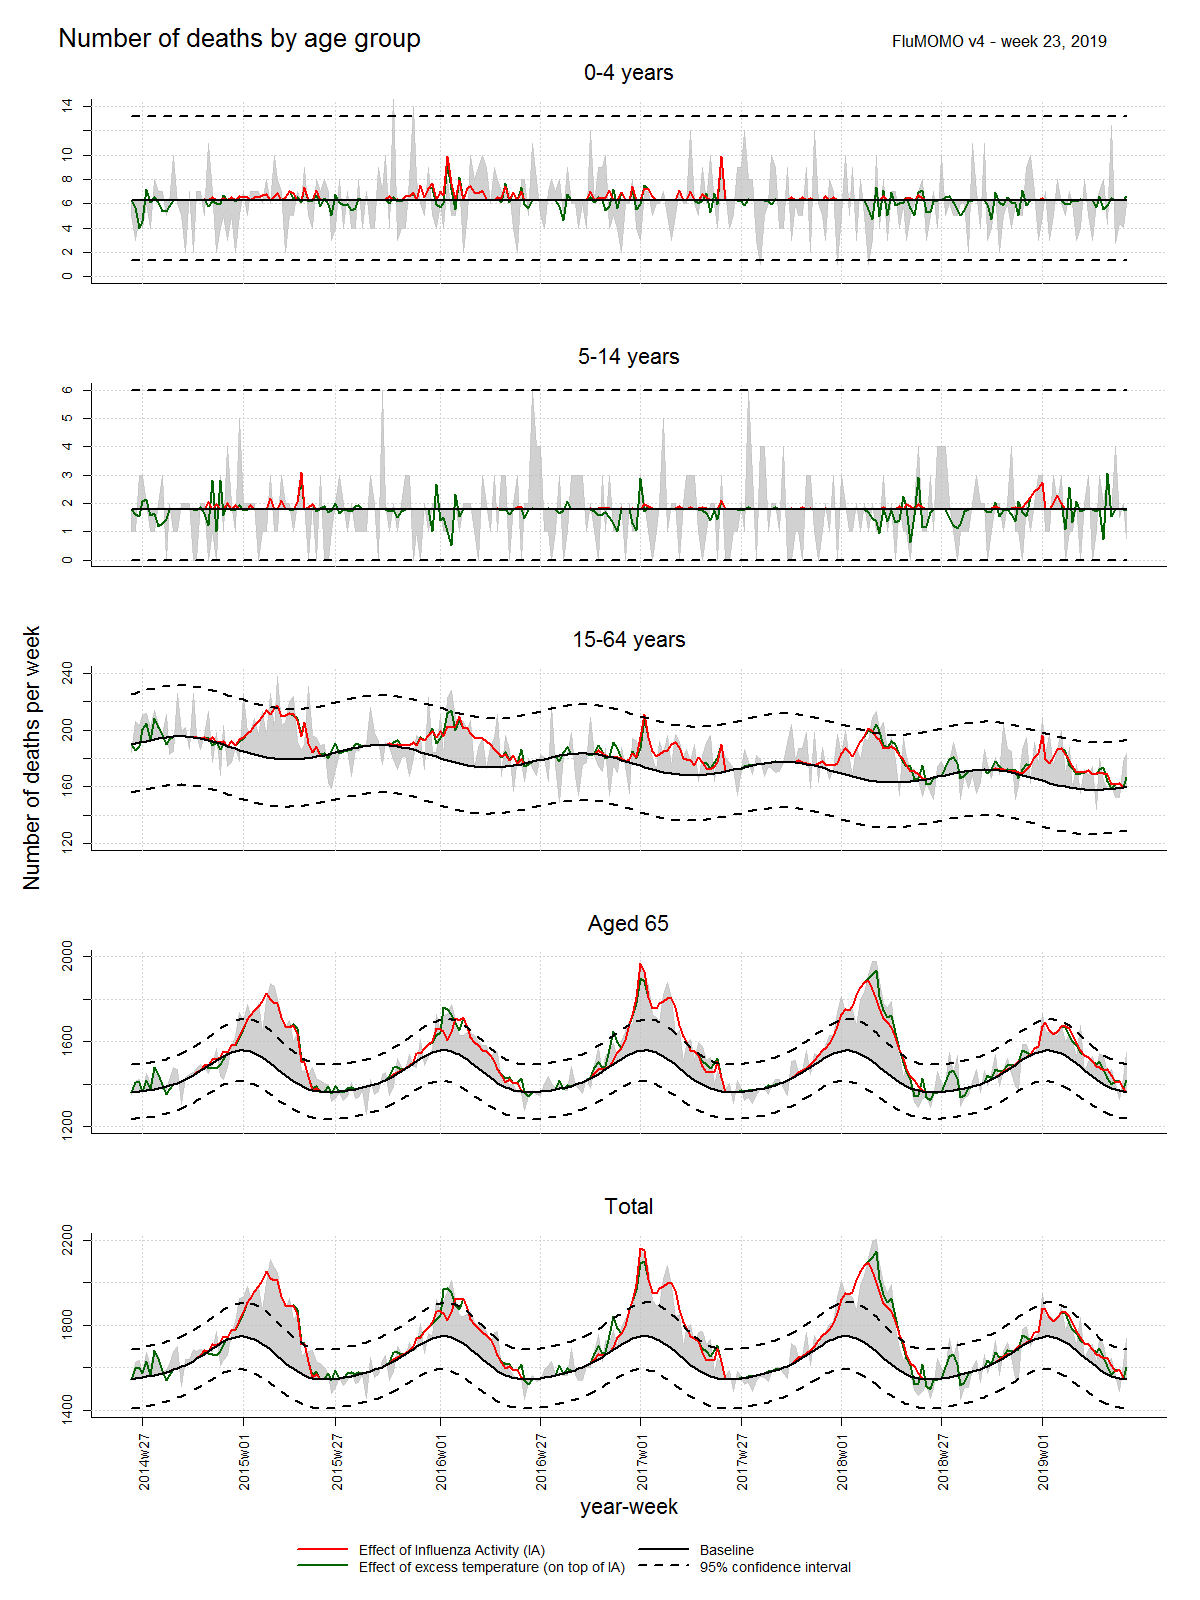 Graph showing the trends in excess mortality by week from 2014 to 2019. High peaks are seen among the elderly in the 2014-2015, 2016-2017, 2017-2018 seasons.